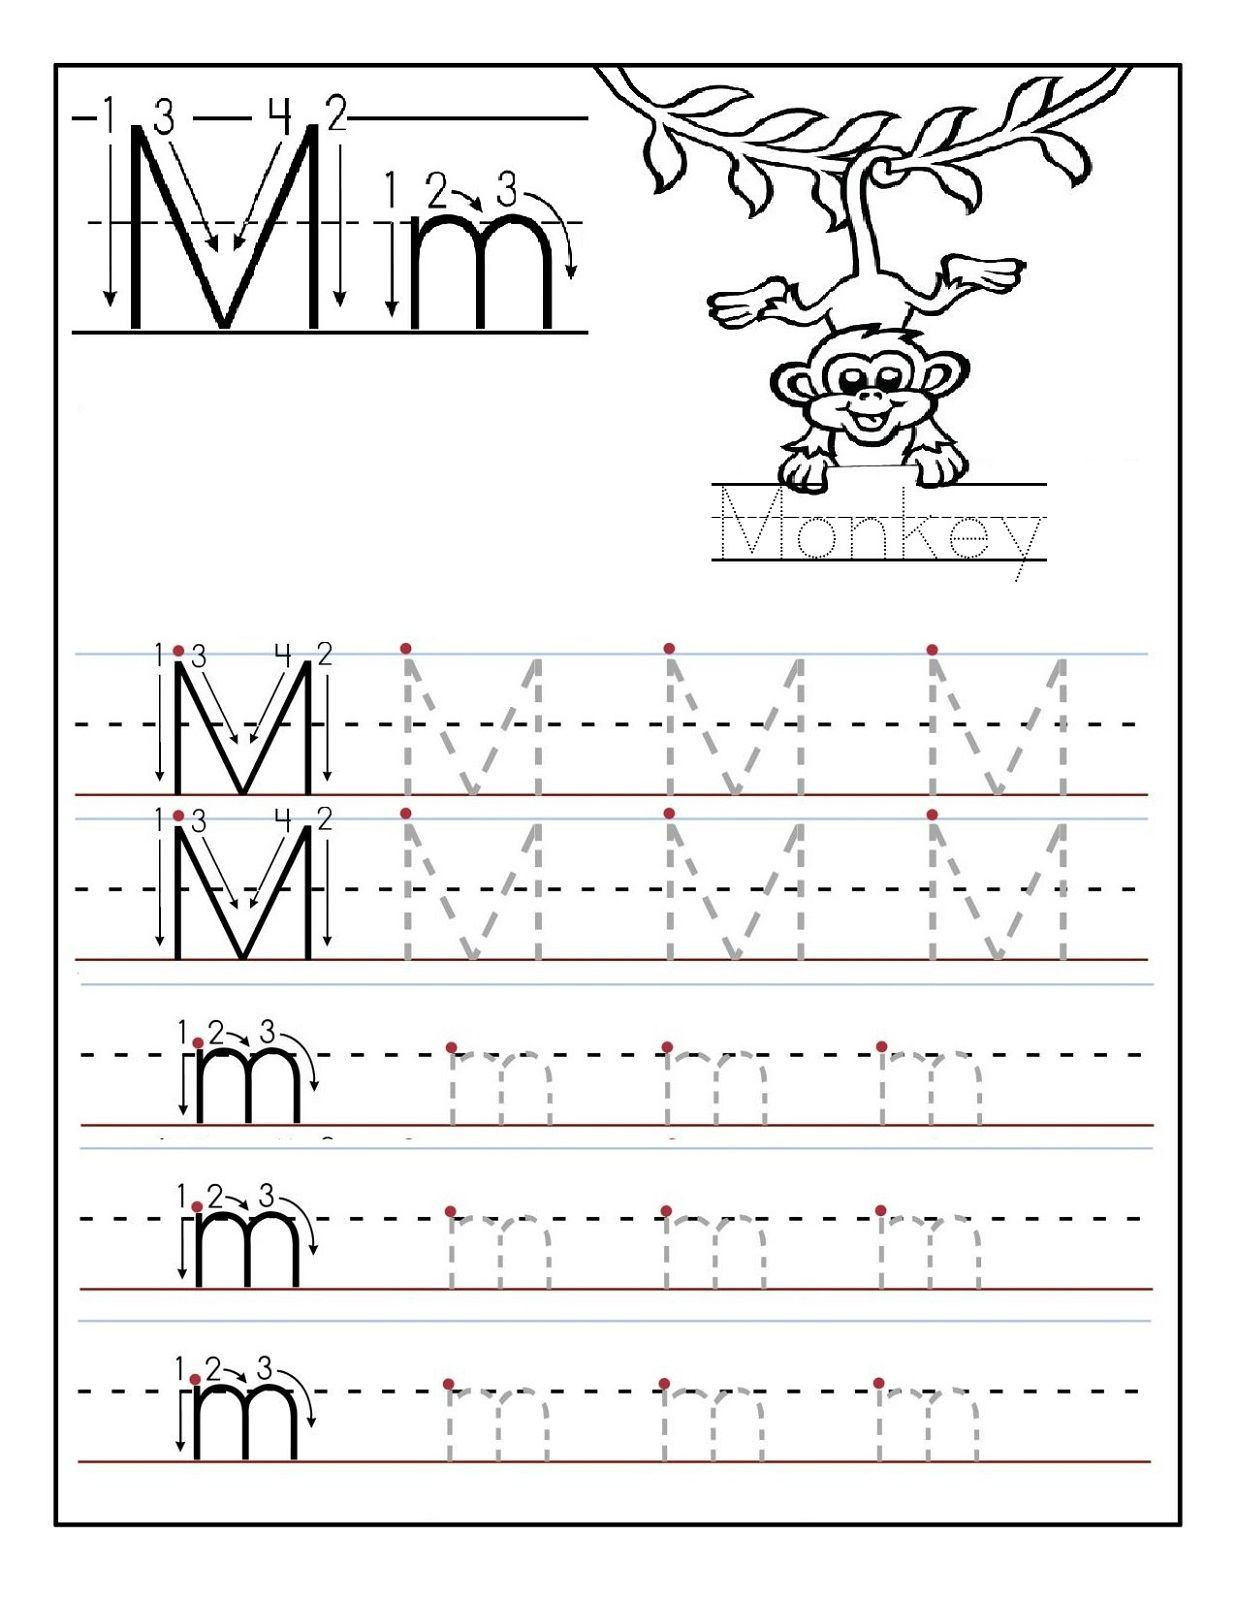 Letter N Worksheets for Preschool 2 Preschool Letter N Tracing Worksheets In 2020